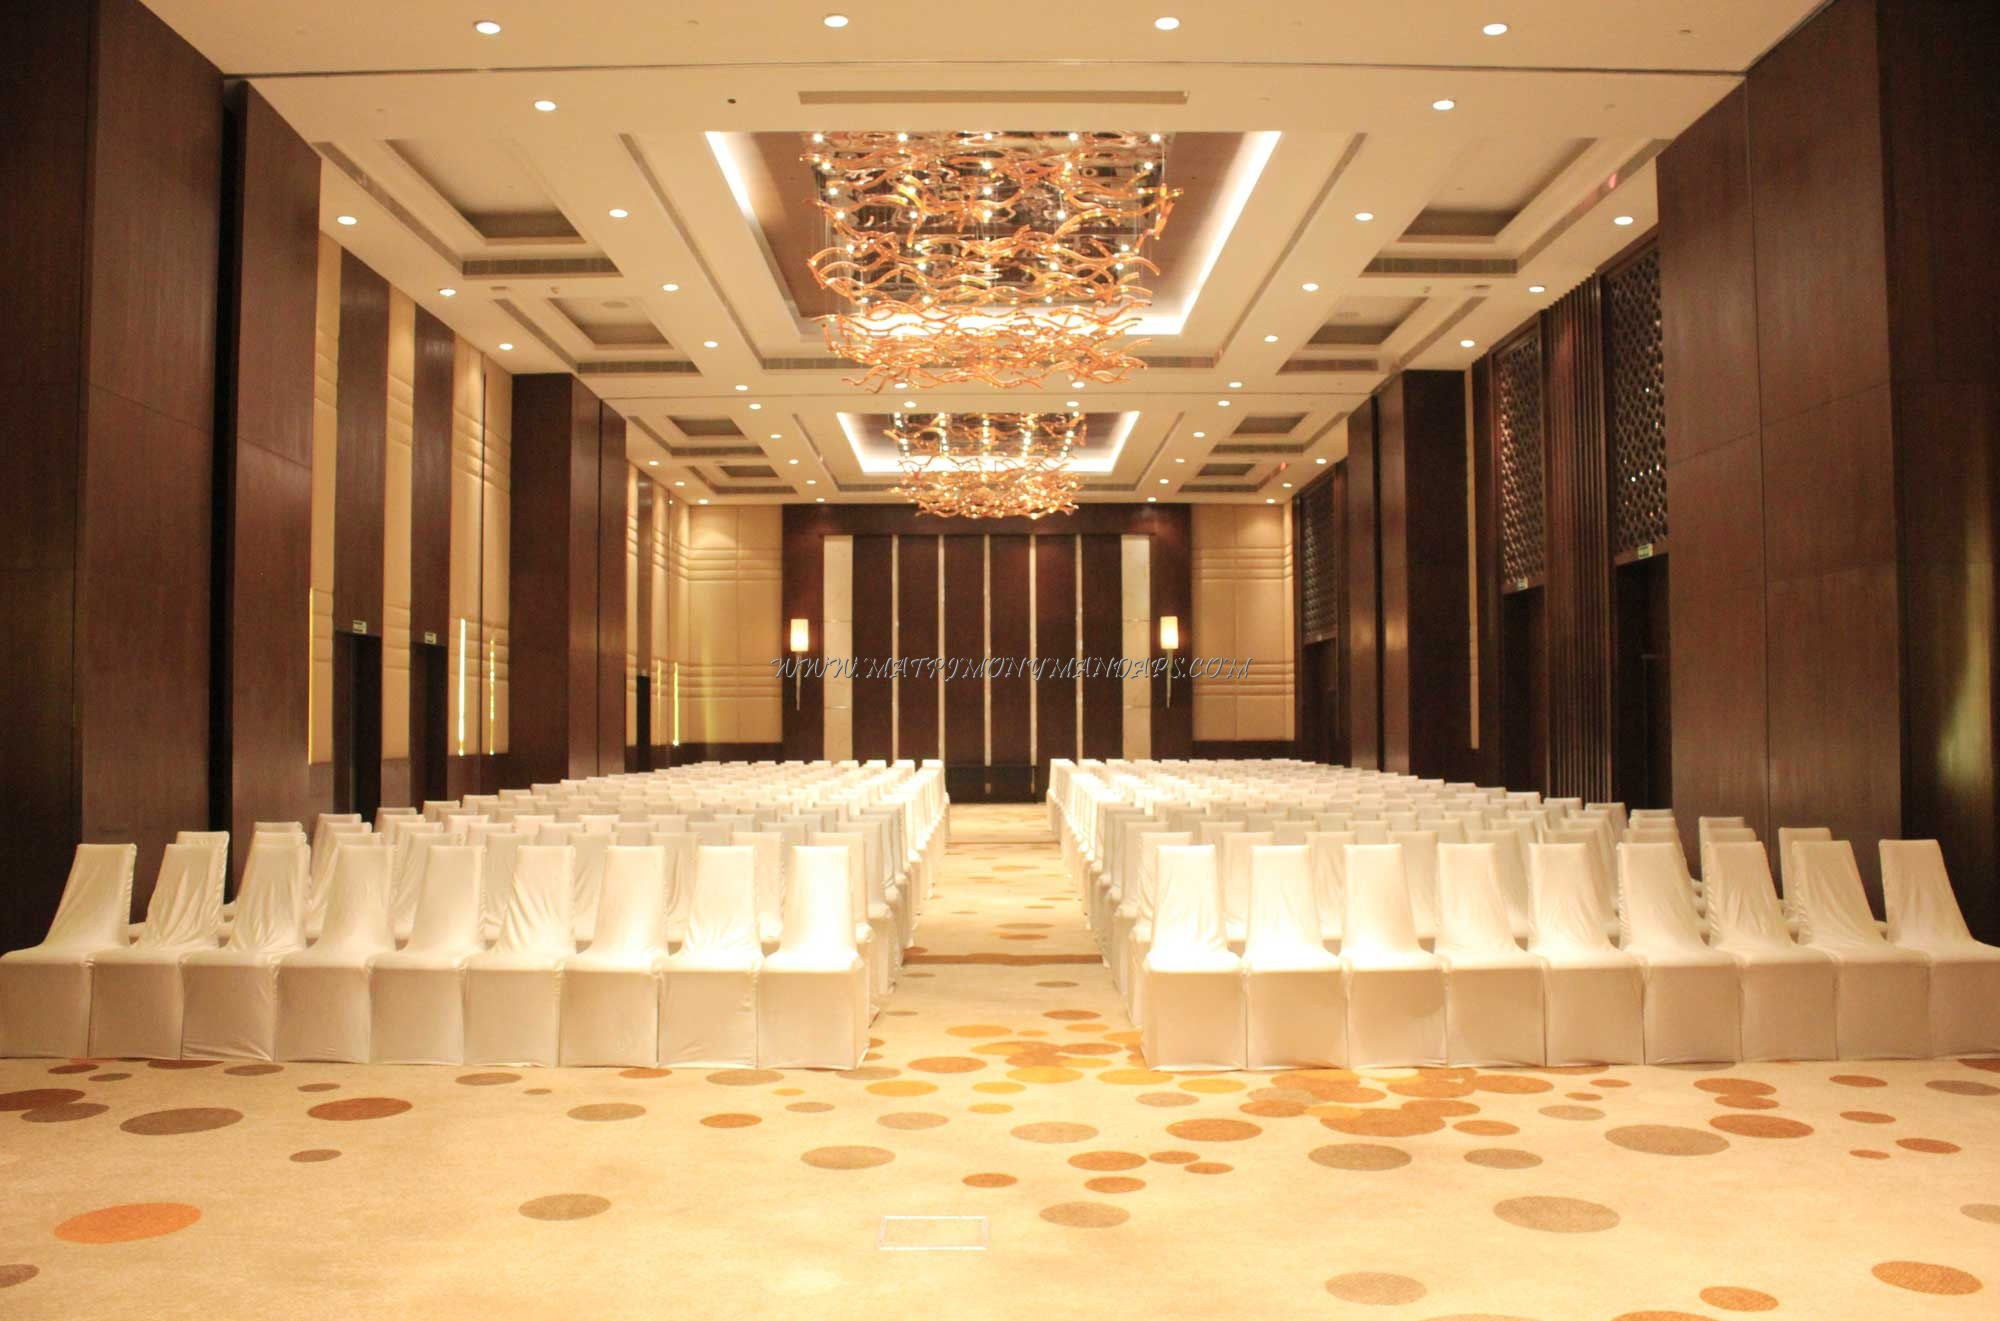 Find the availability of the Inspire 1 Westin (A/C) in Velachery, Chennai and avail special offers